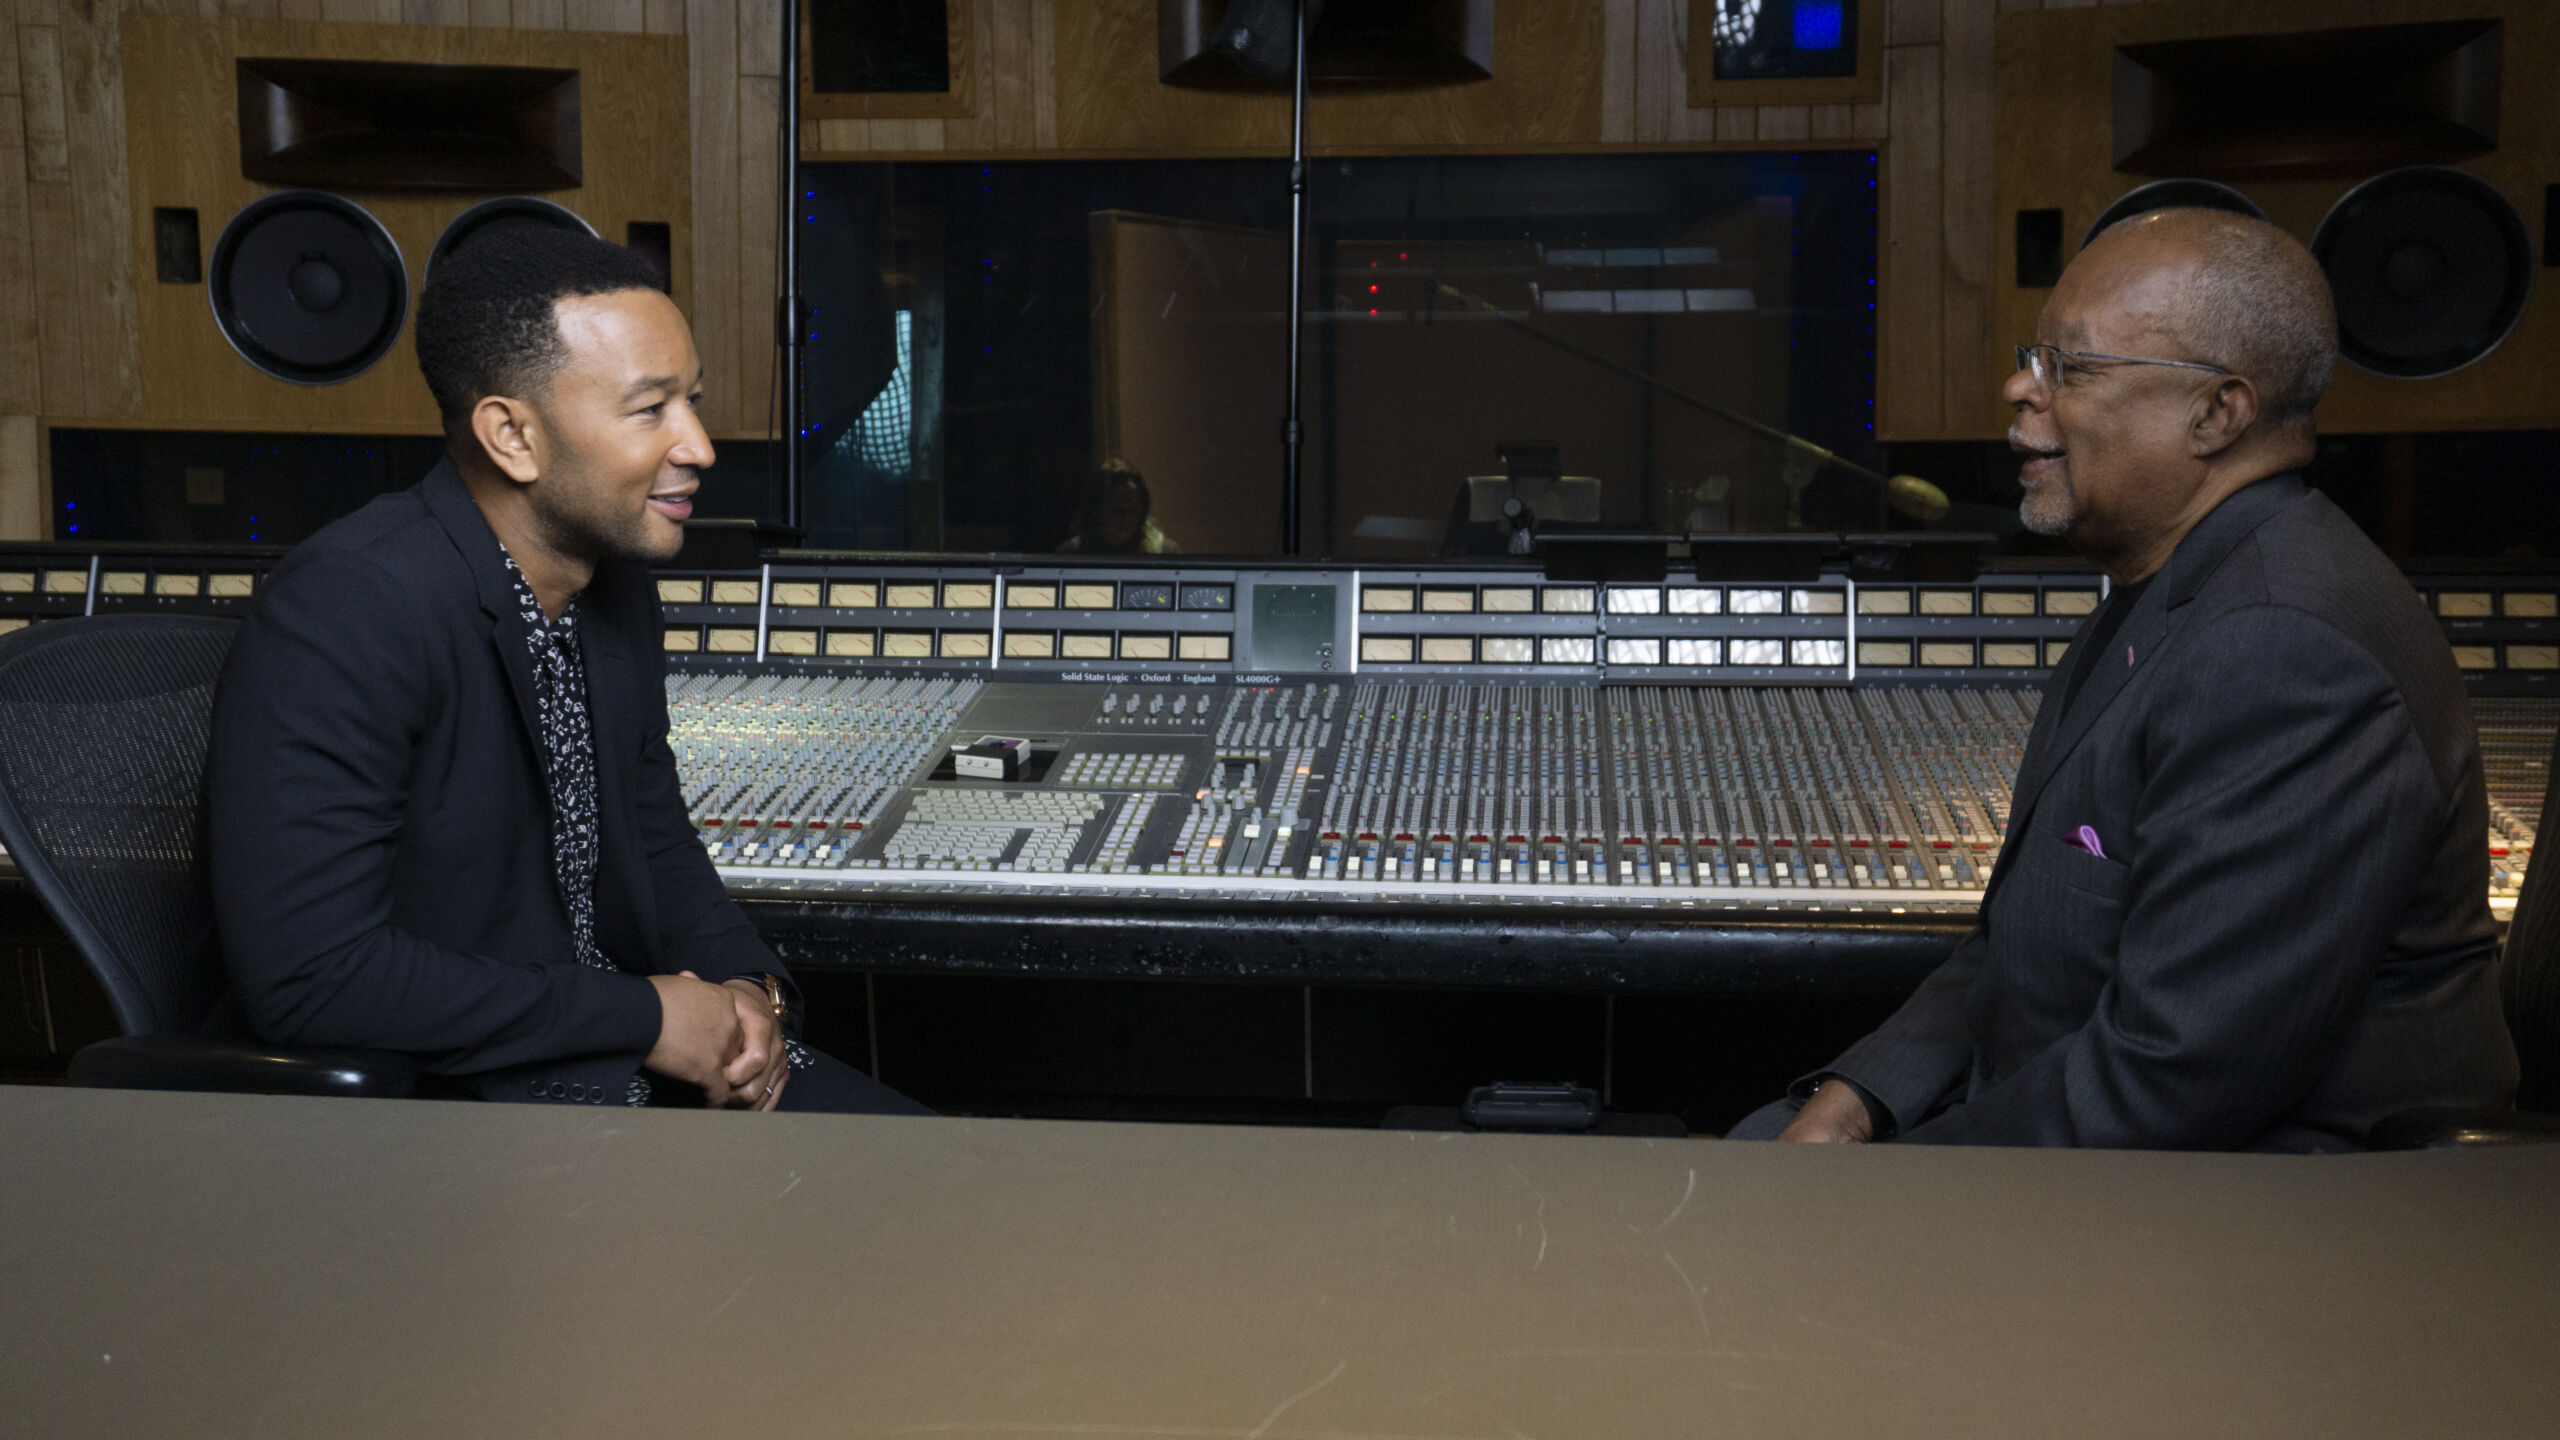 Two black men sit at a distance facing each other; a music studio mixing board runs between them.